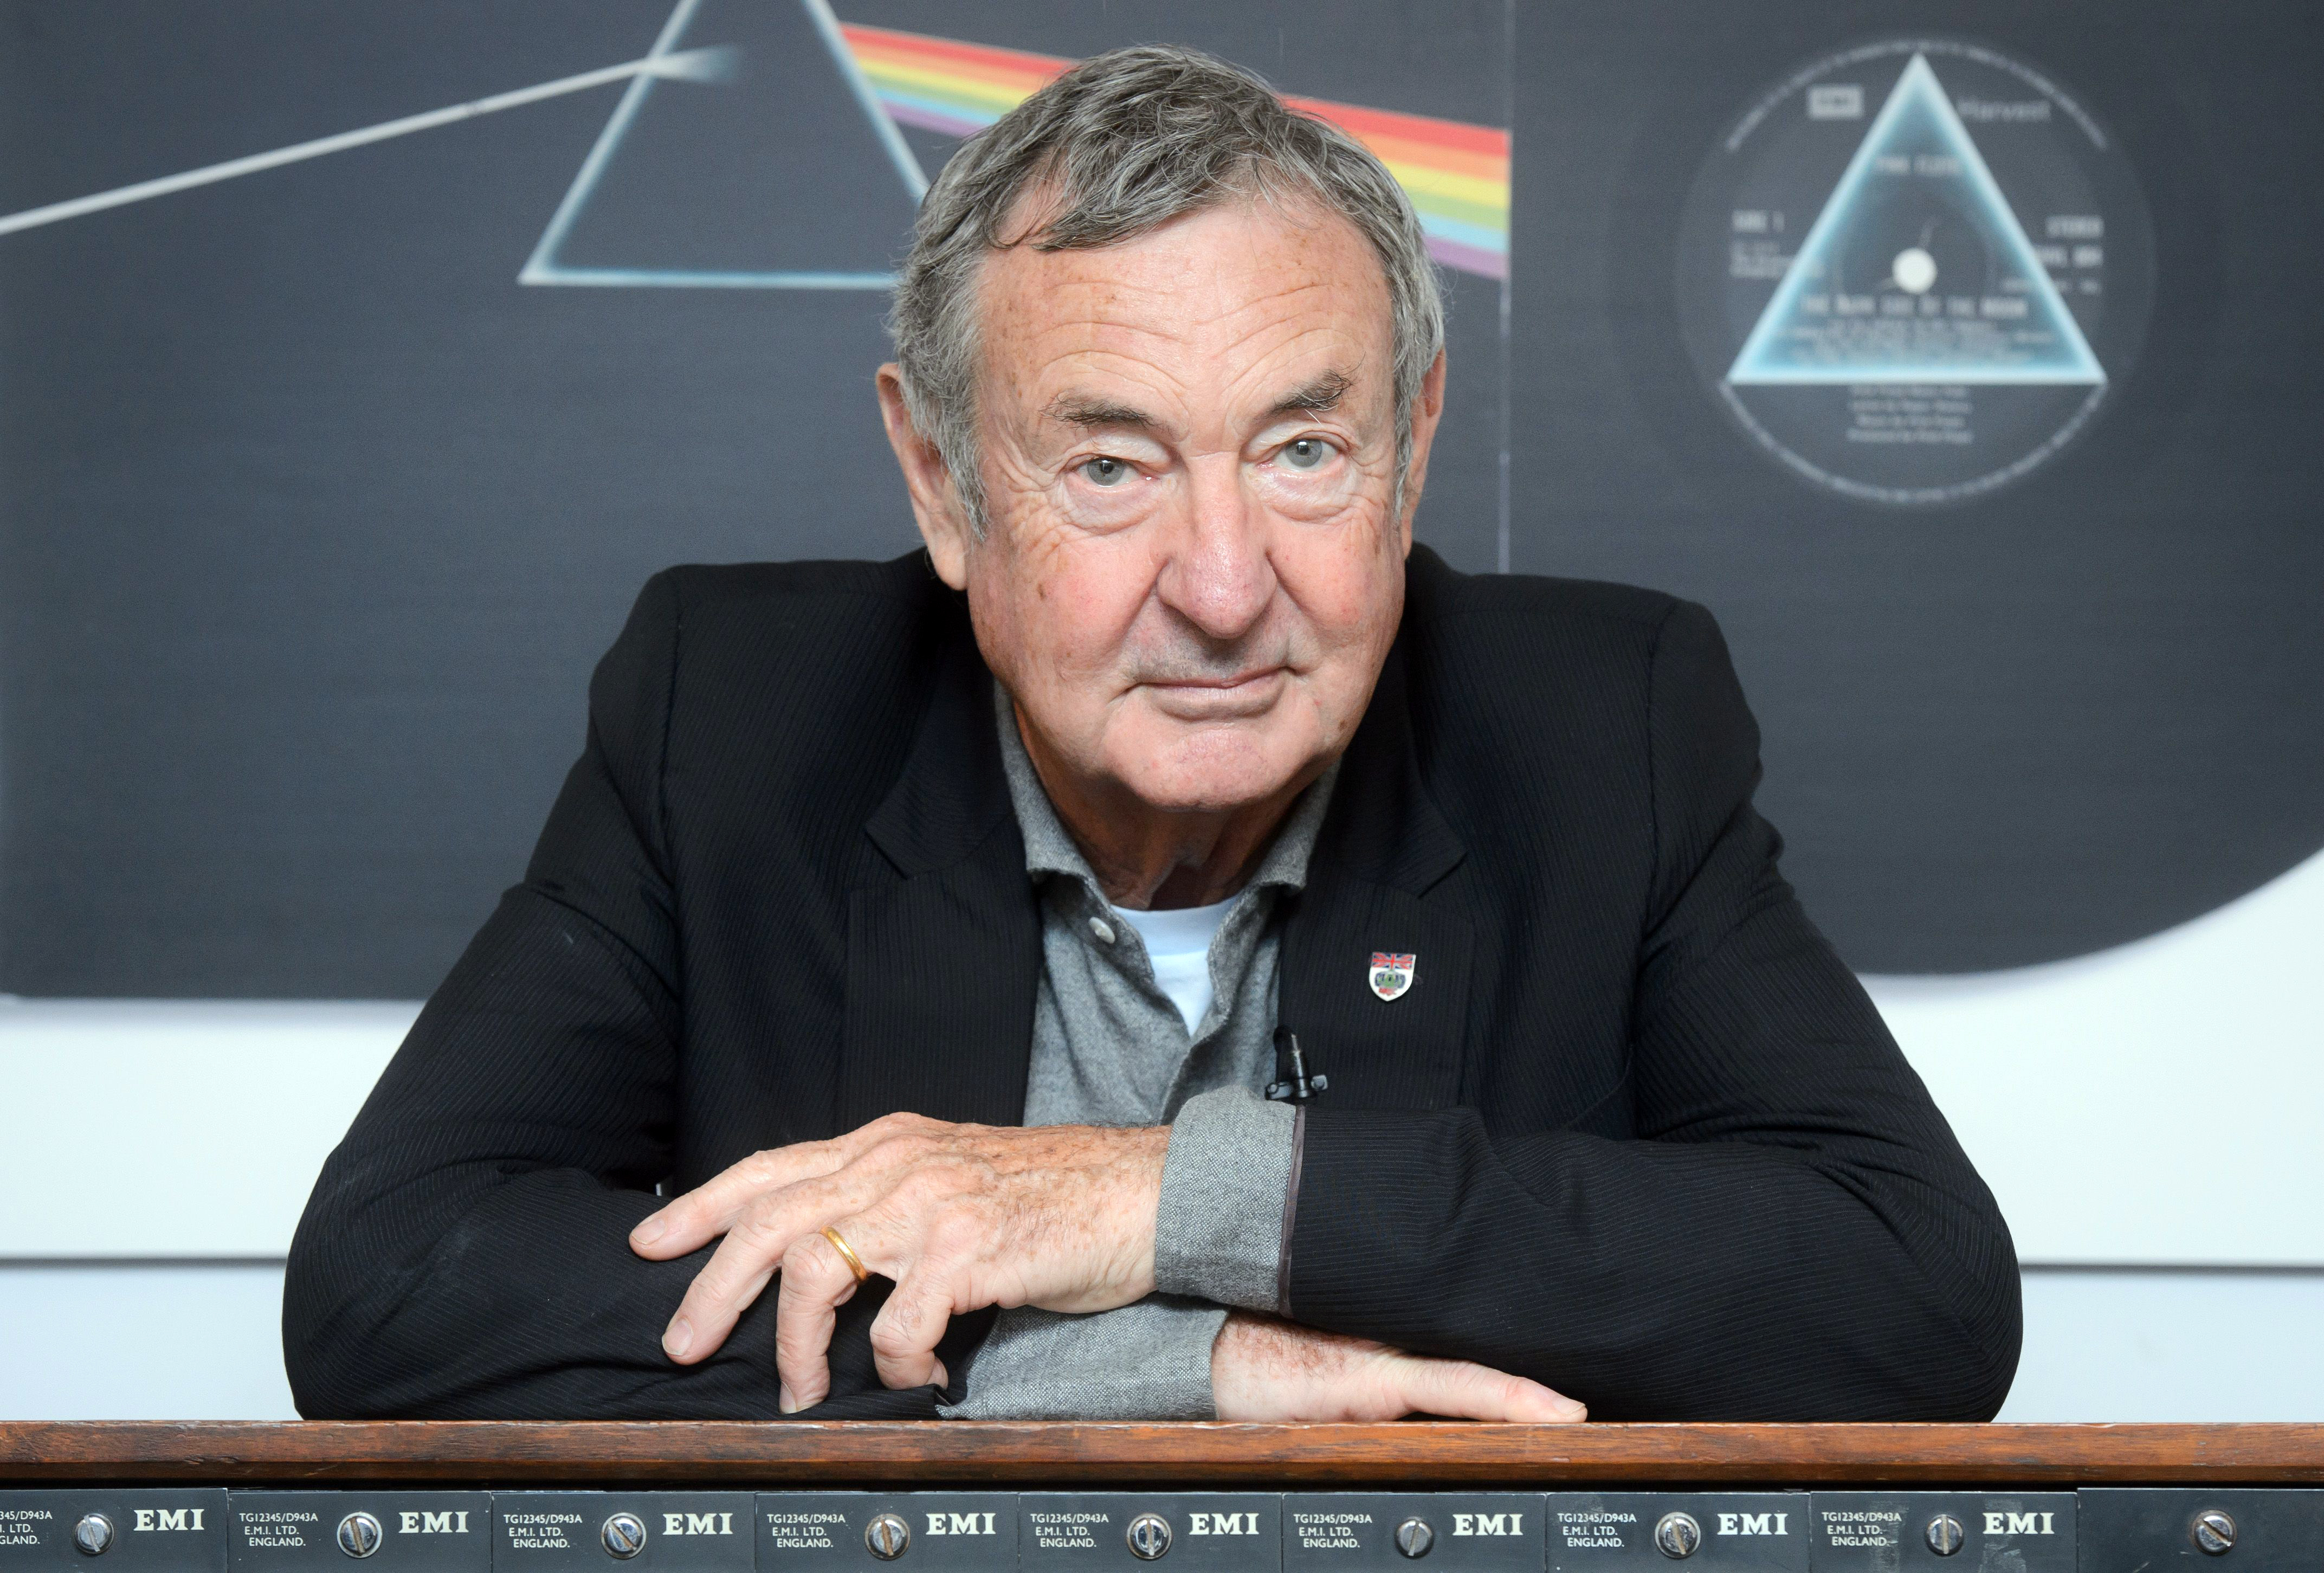 rollingstone.com - David Fricke - Pink Floyd's Nick Mason Talks New Solo Box Set, Reviving Band's Early Work Onstage